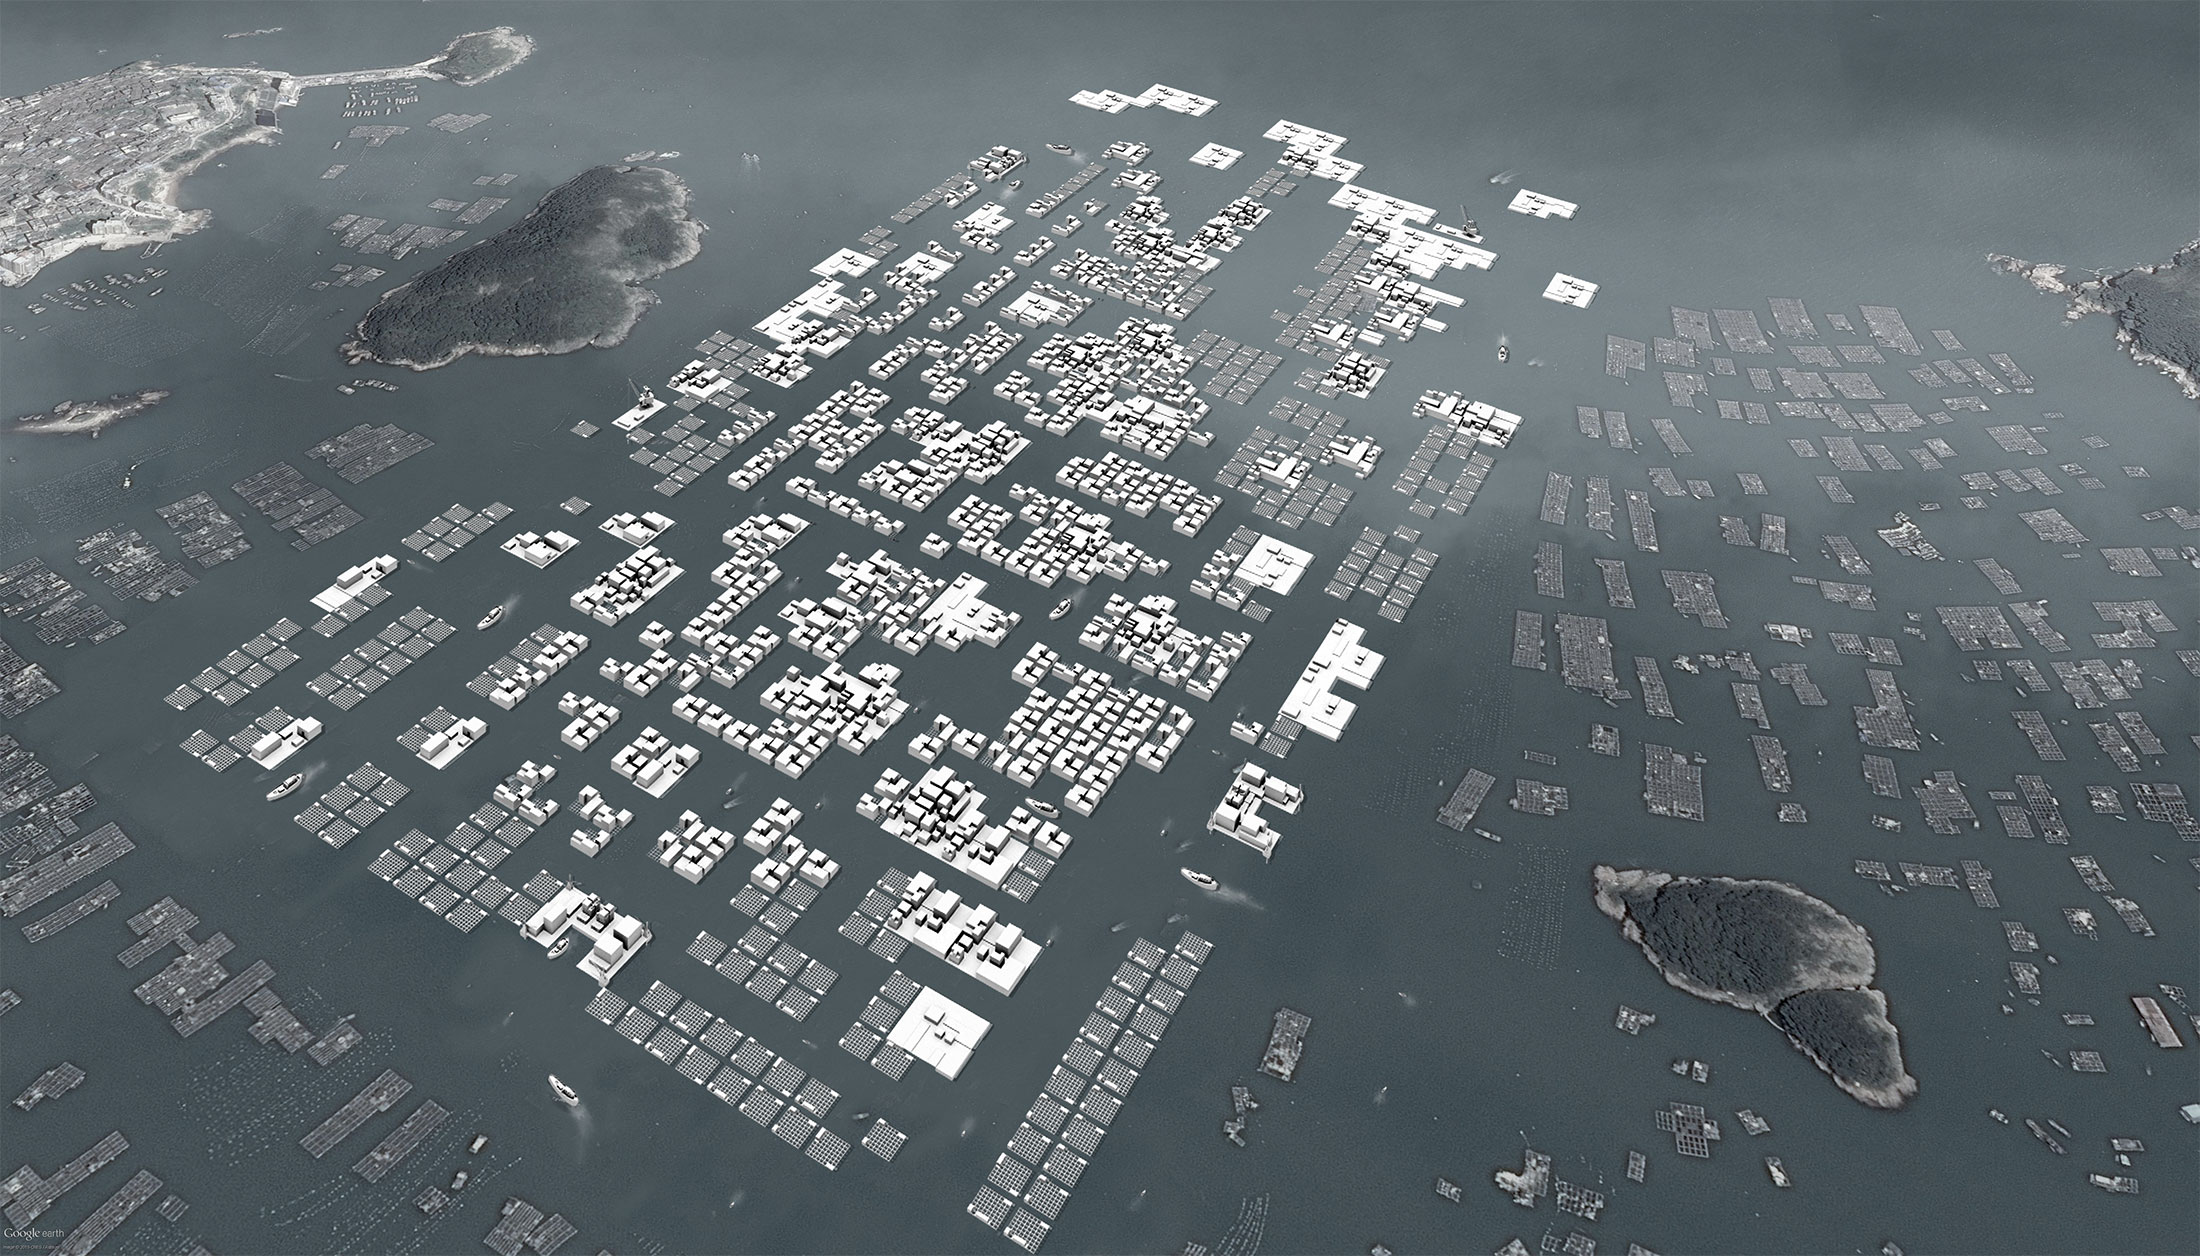 M.ARCH JURY WEEK: ADAPTIVE FLOATING SETTLEMENT